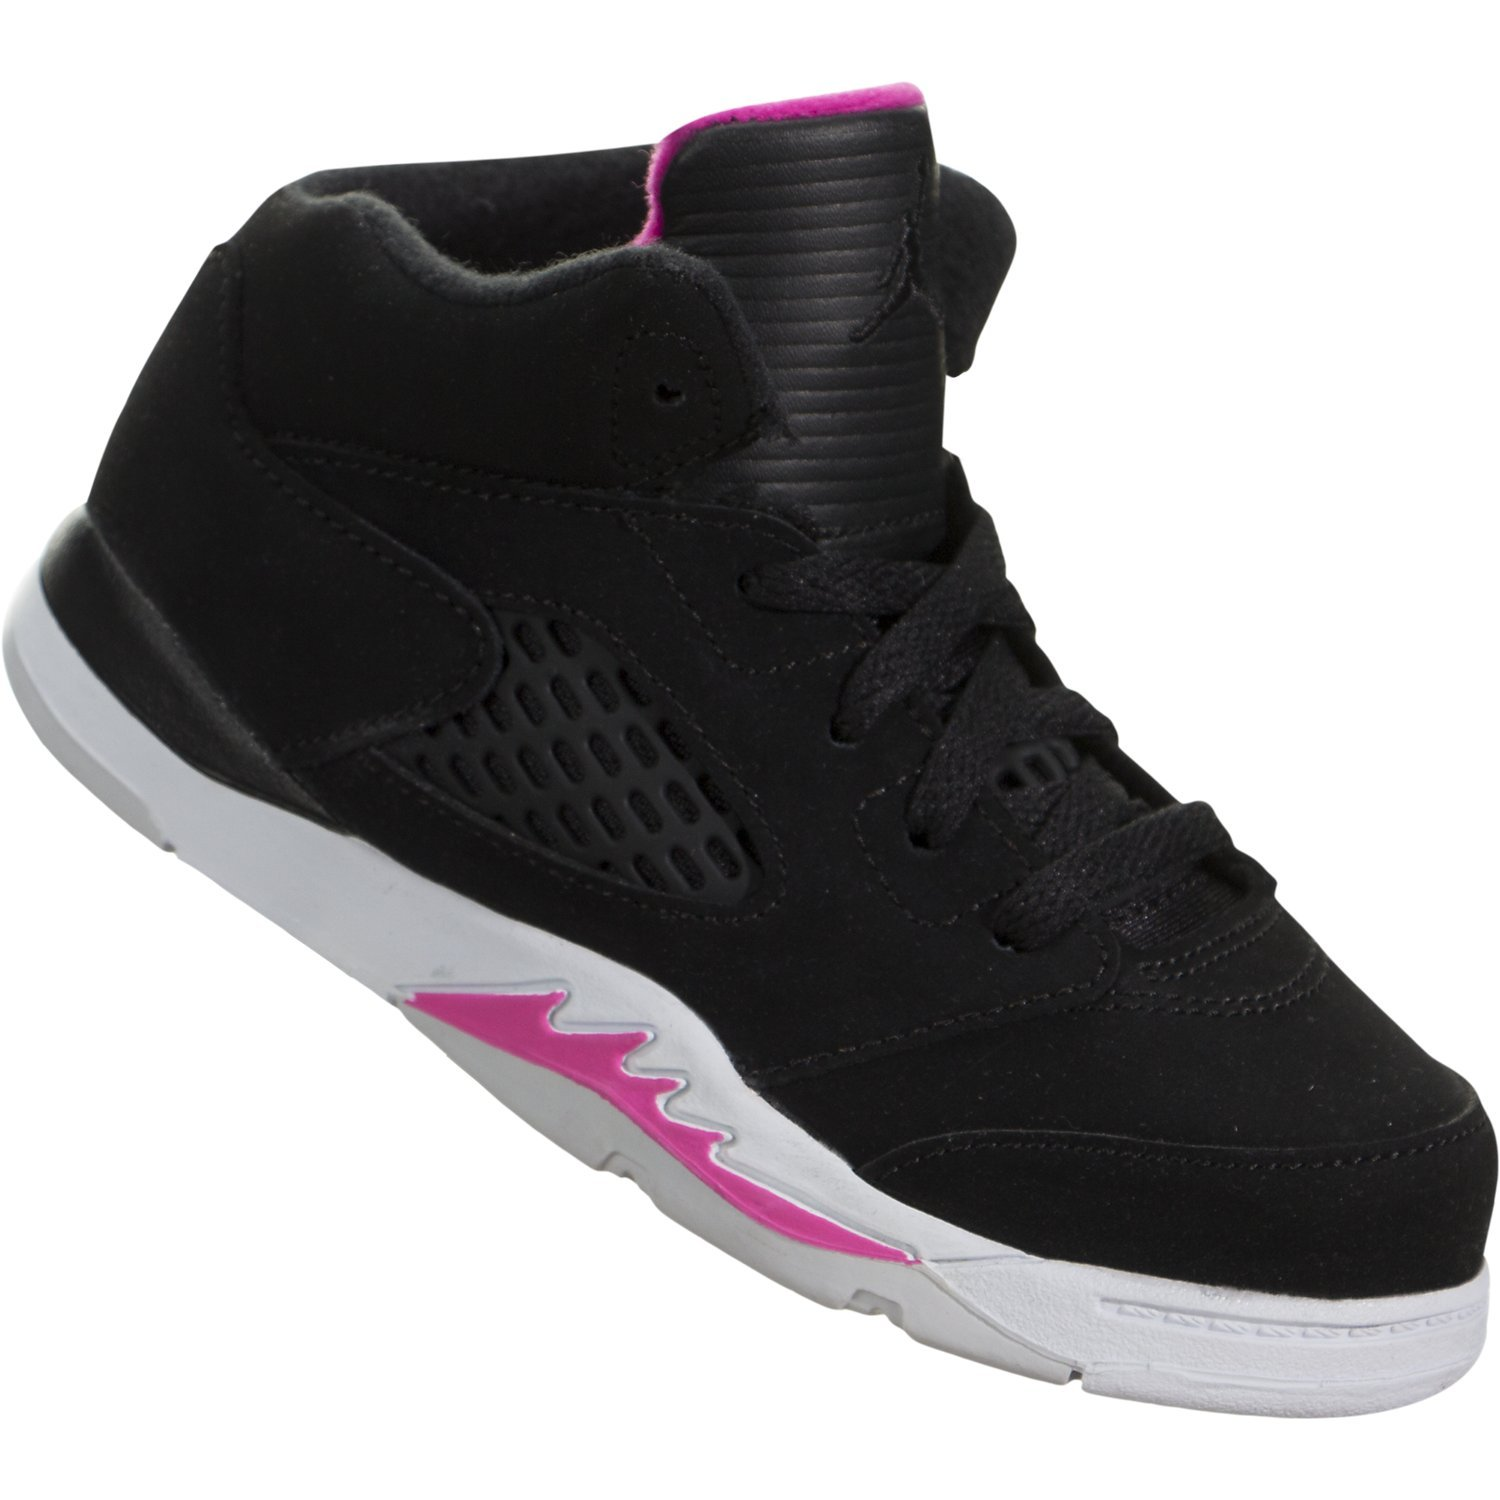 NIKE Jordan 5 Retro Toddlers Sneakers Black/Black/Deadly Pink/White 725172-029 (10 M US) by Jordan